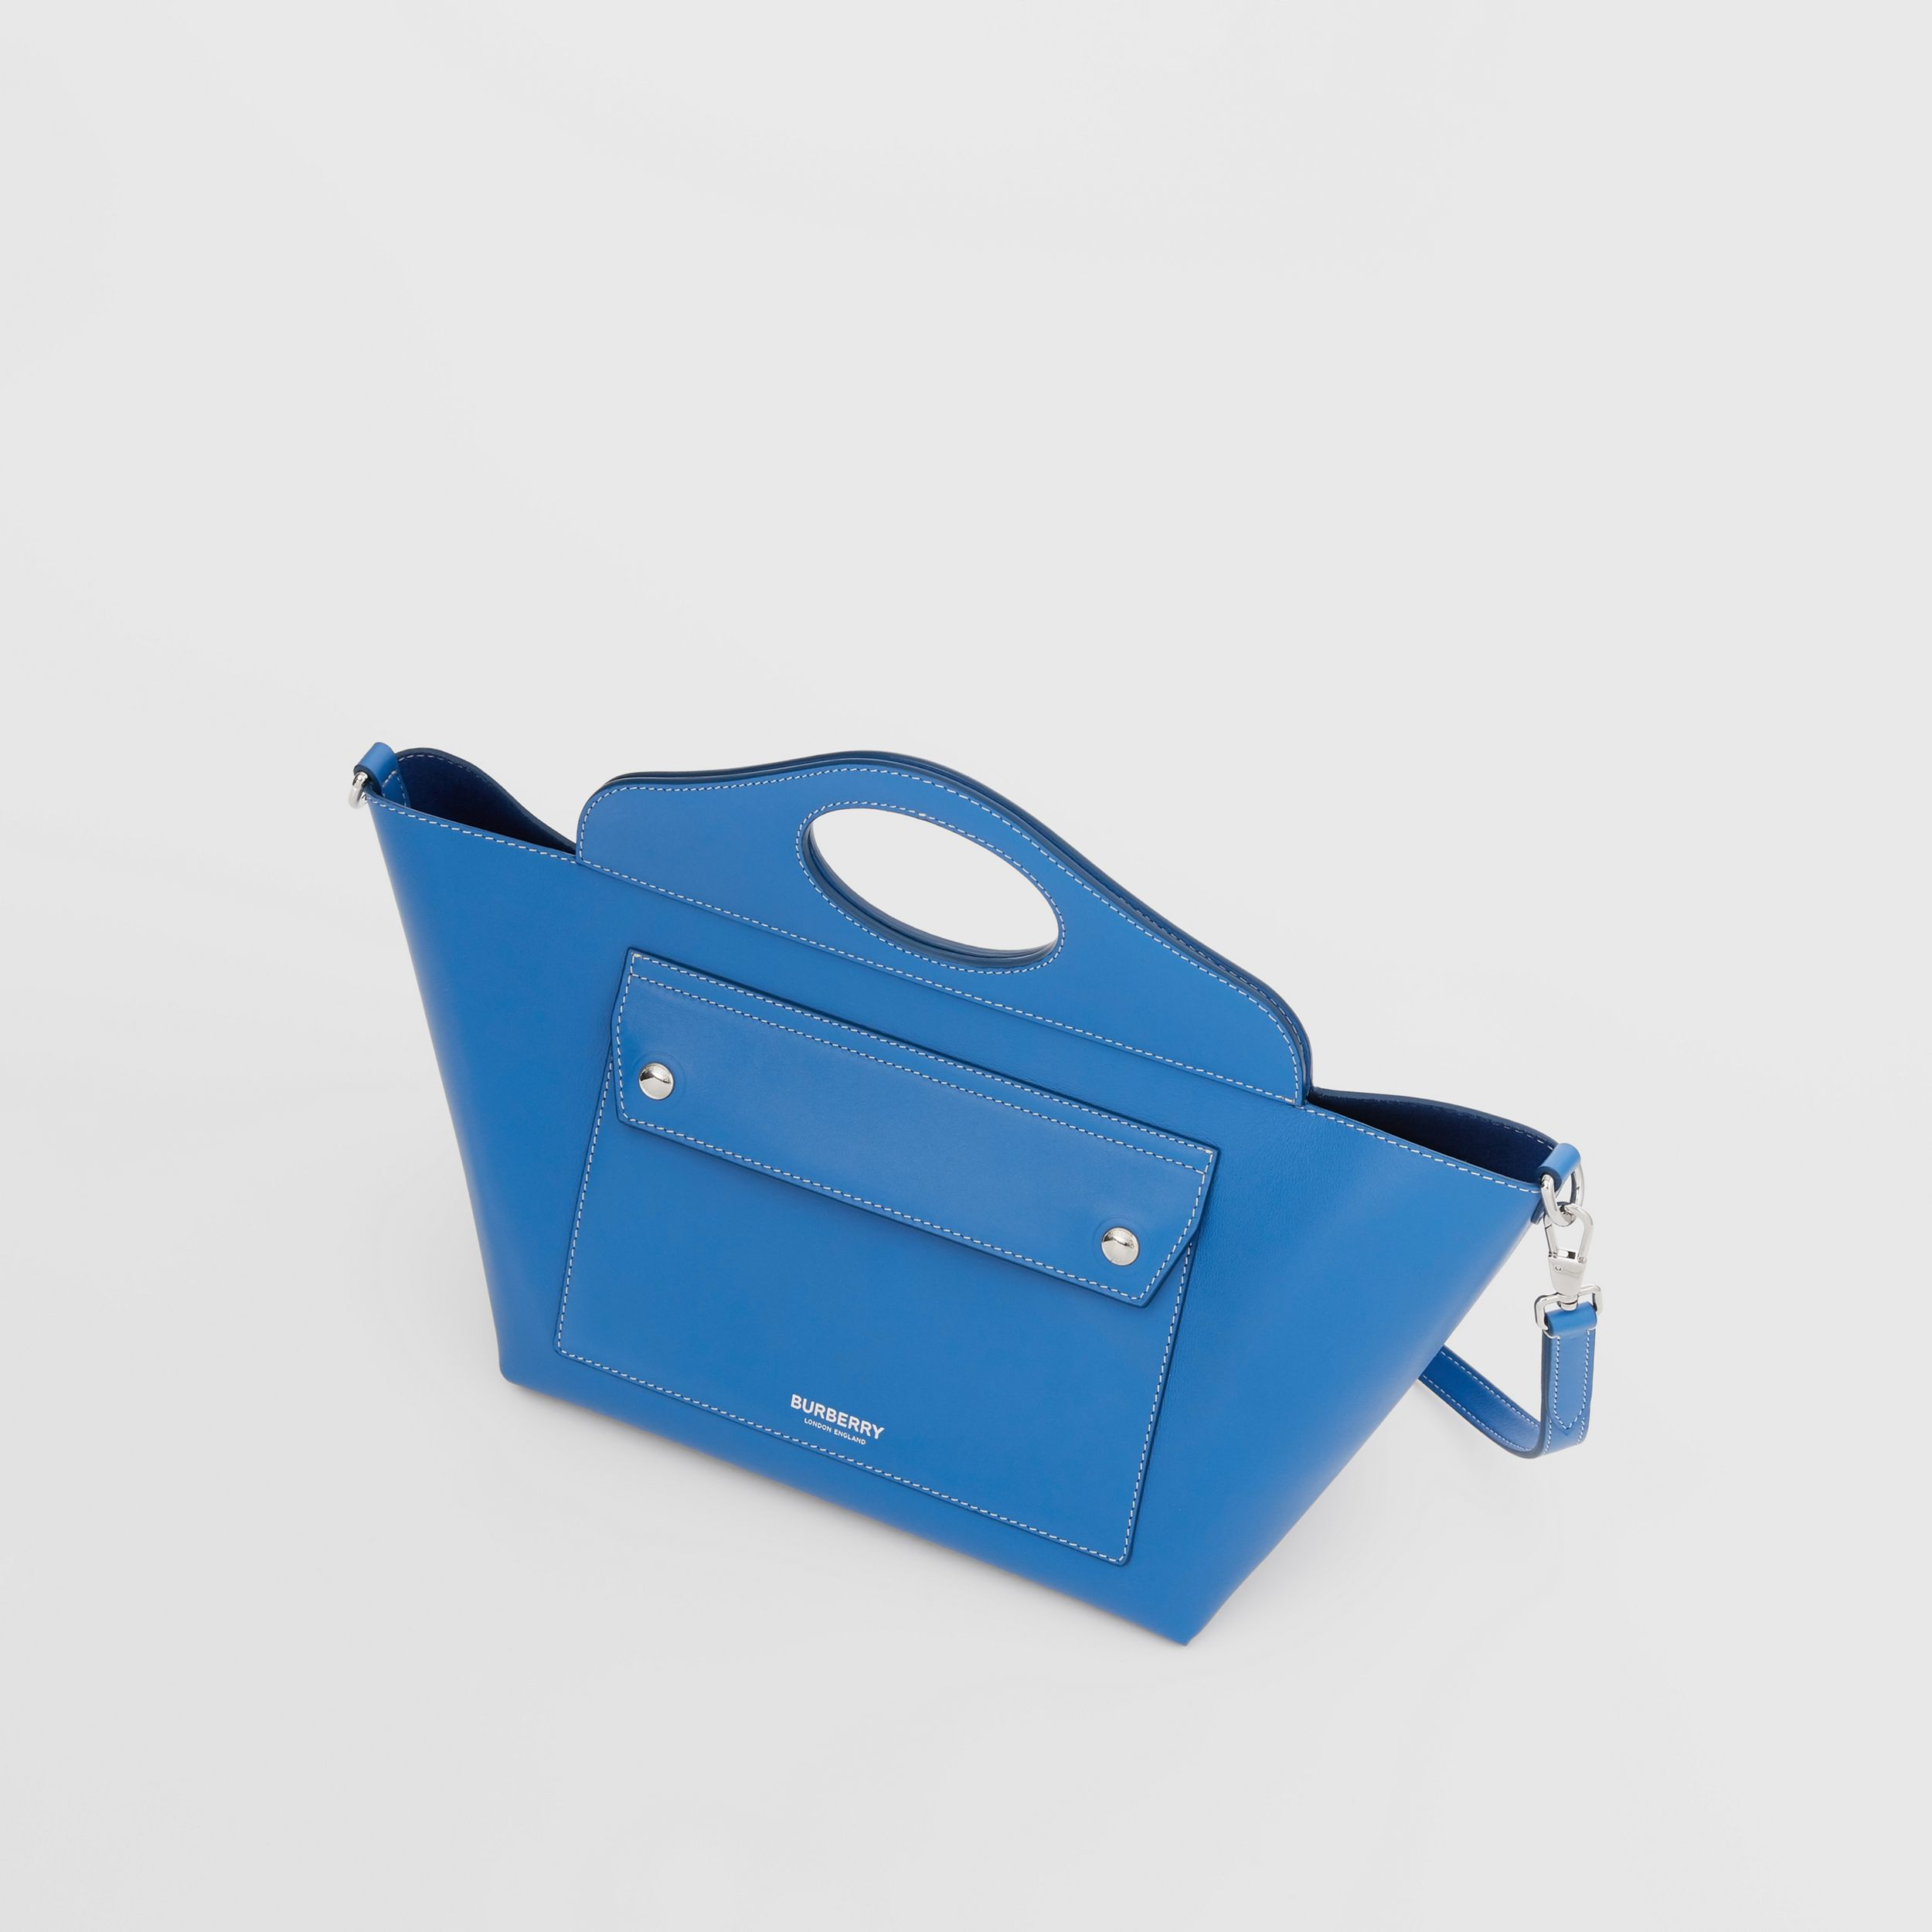 Mini Leather Soft Pocket Tote in Warm Royal Blue - Women | Burberry Australia - 4